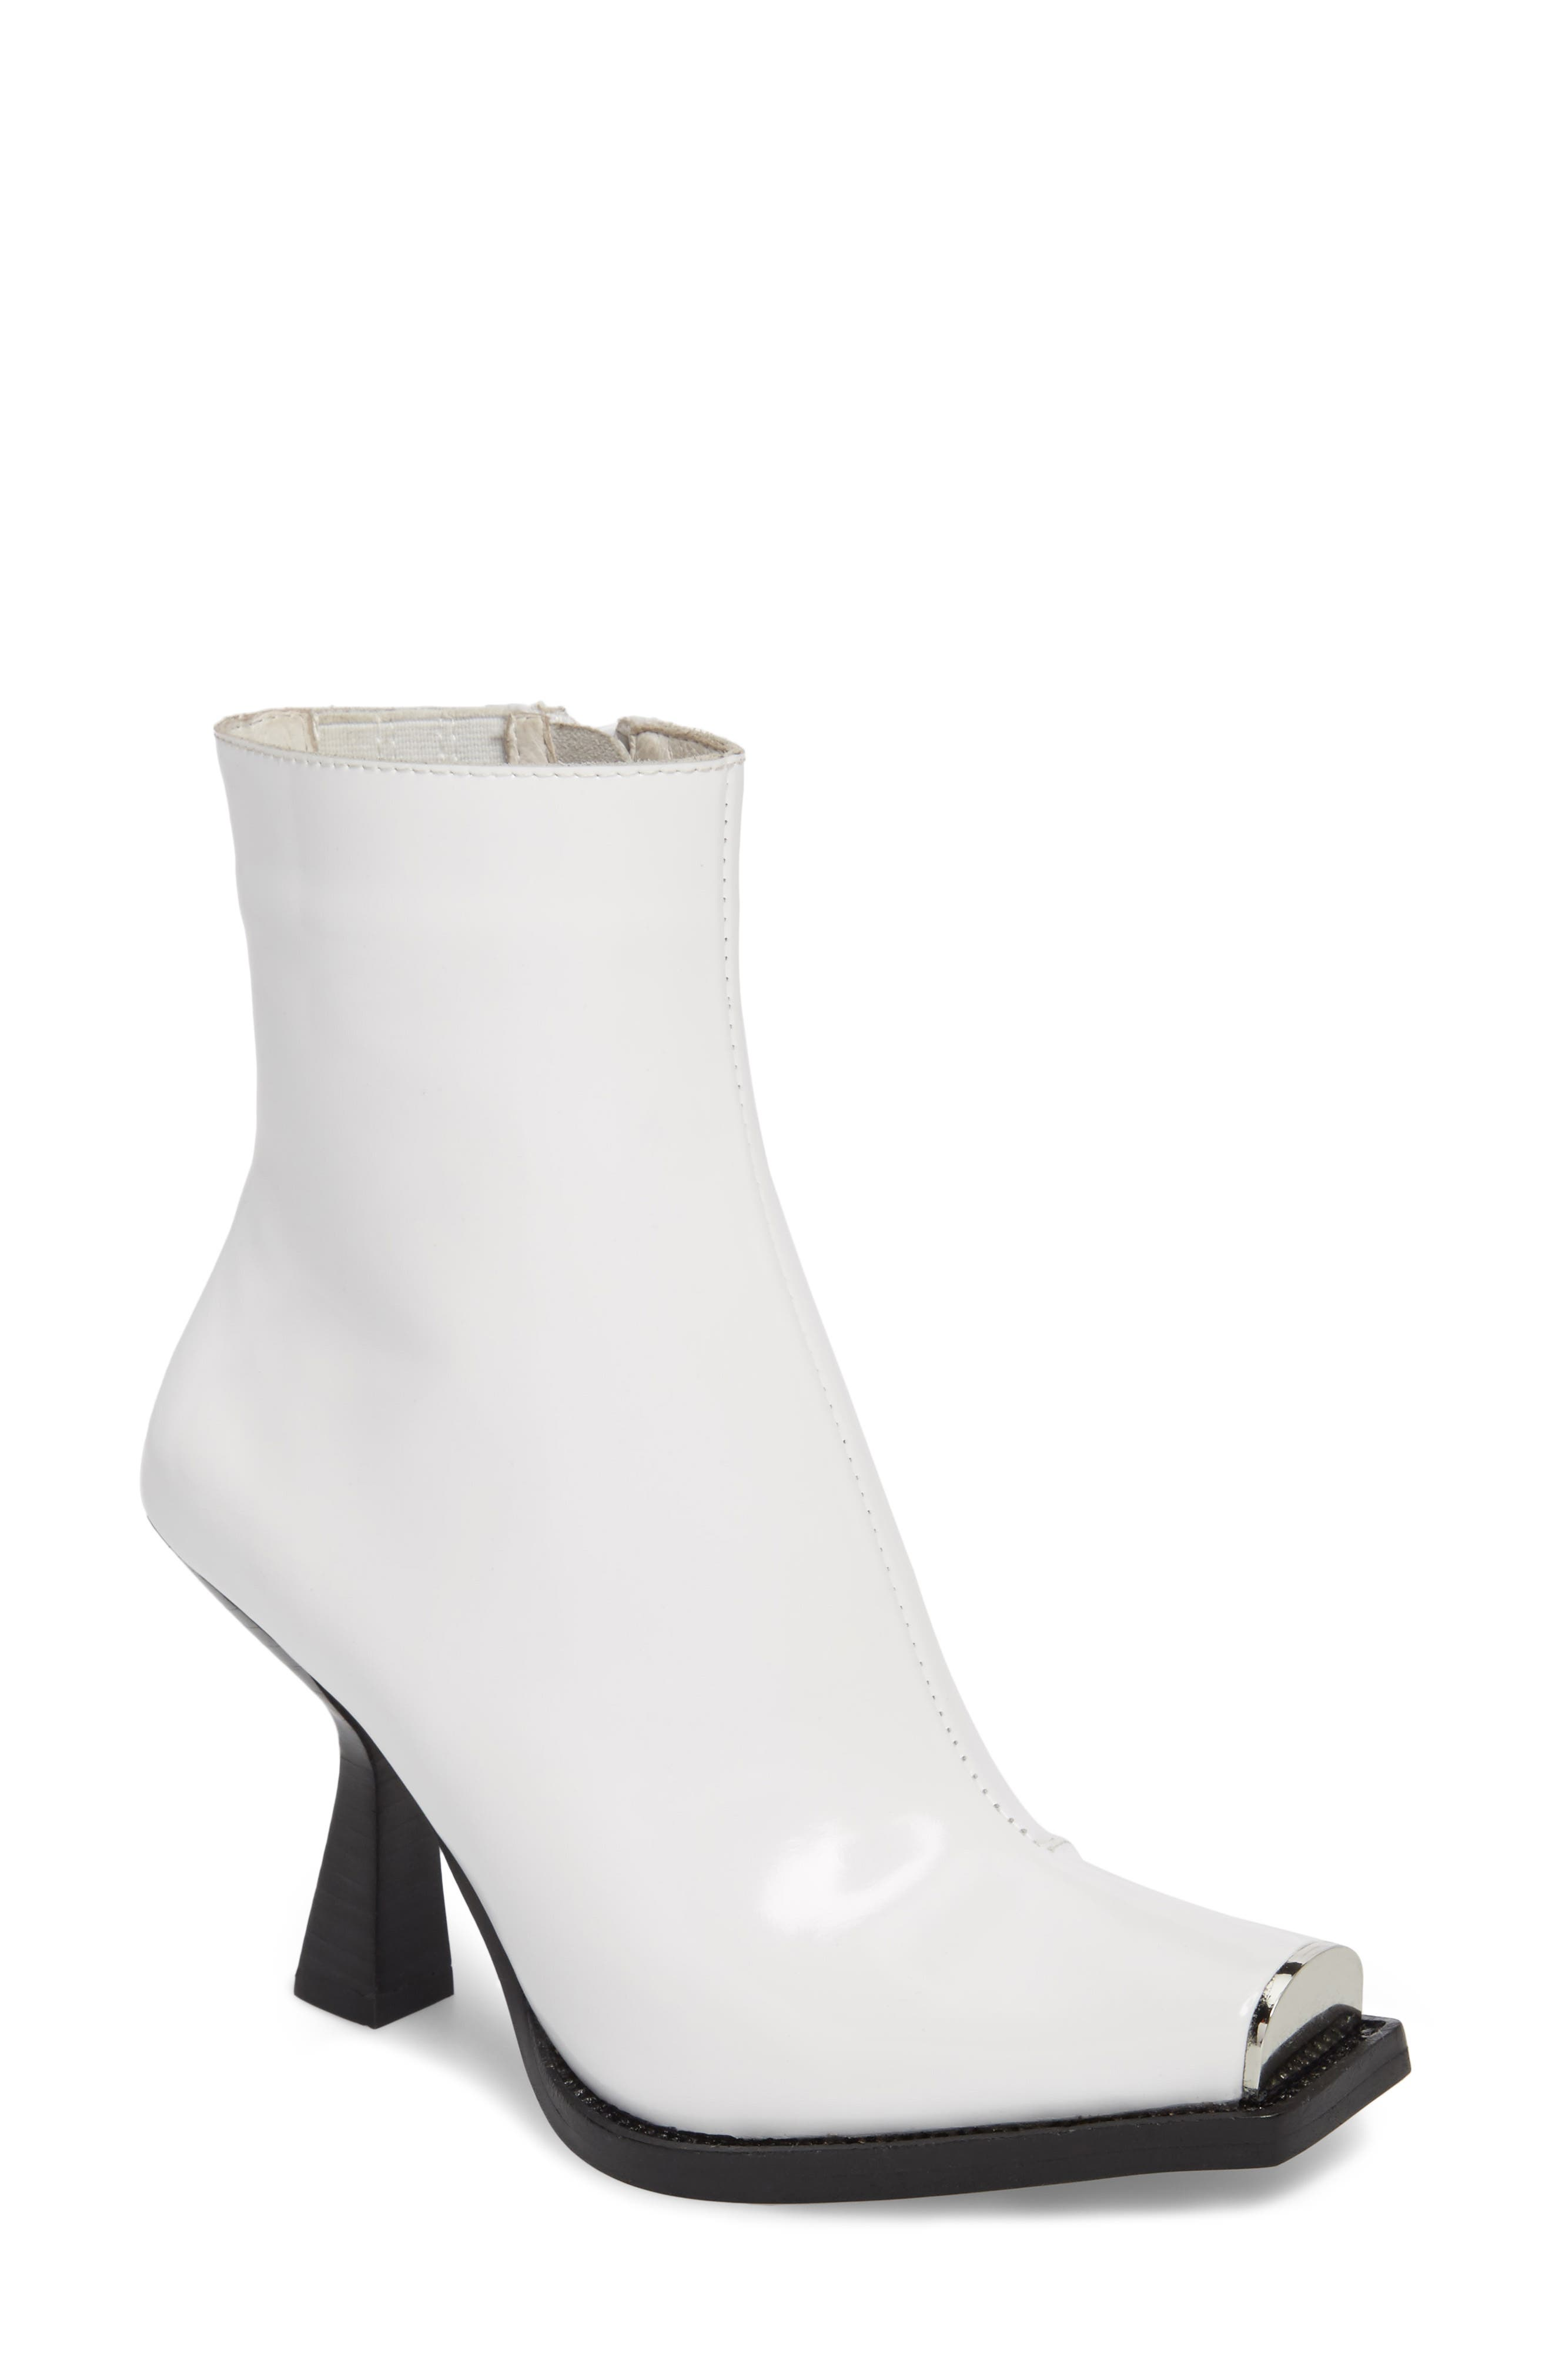 Alternate Image 1 Selected - Jeffrey Campbell Hiatus Bootie (Women)